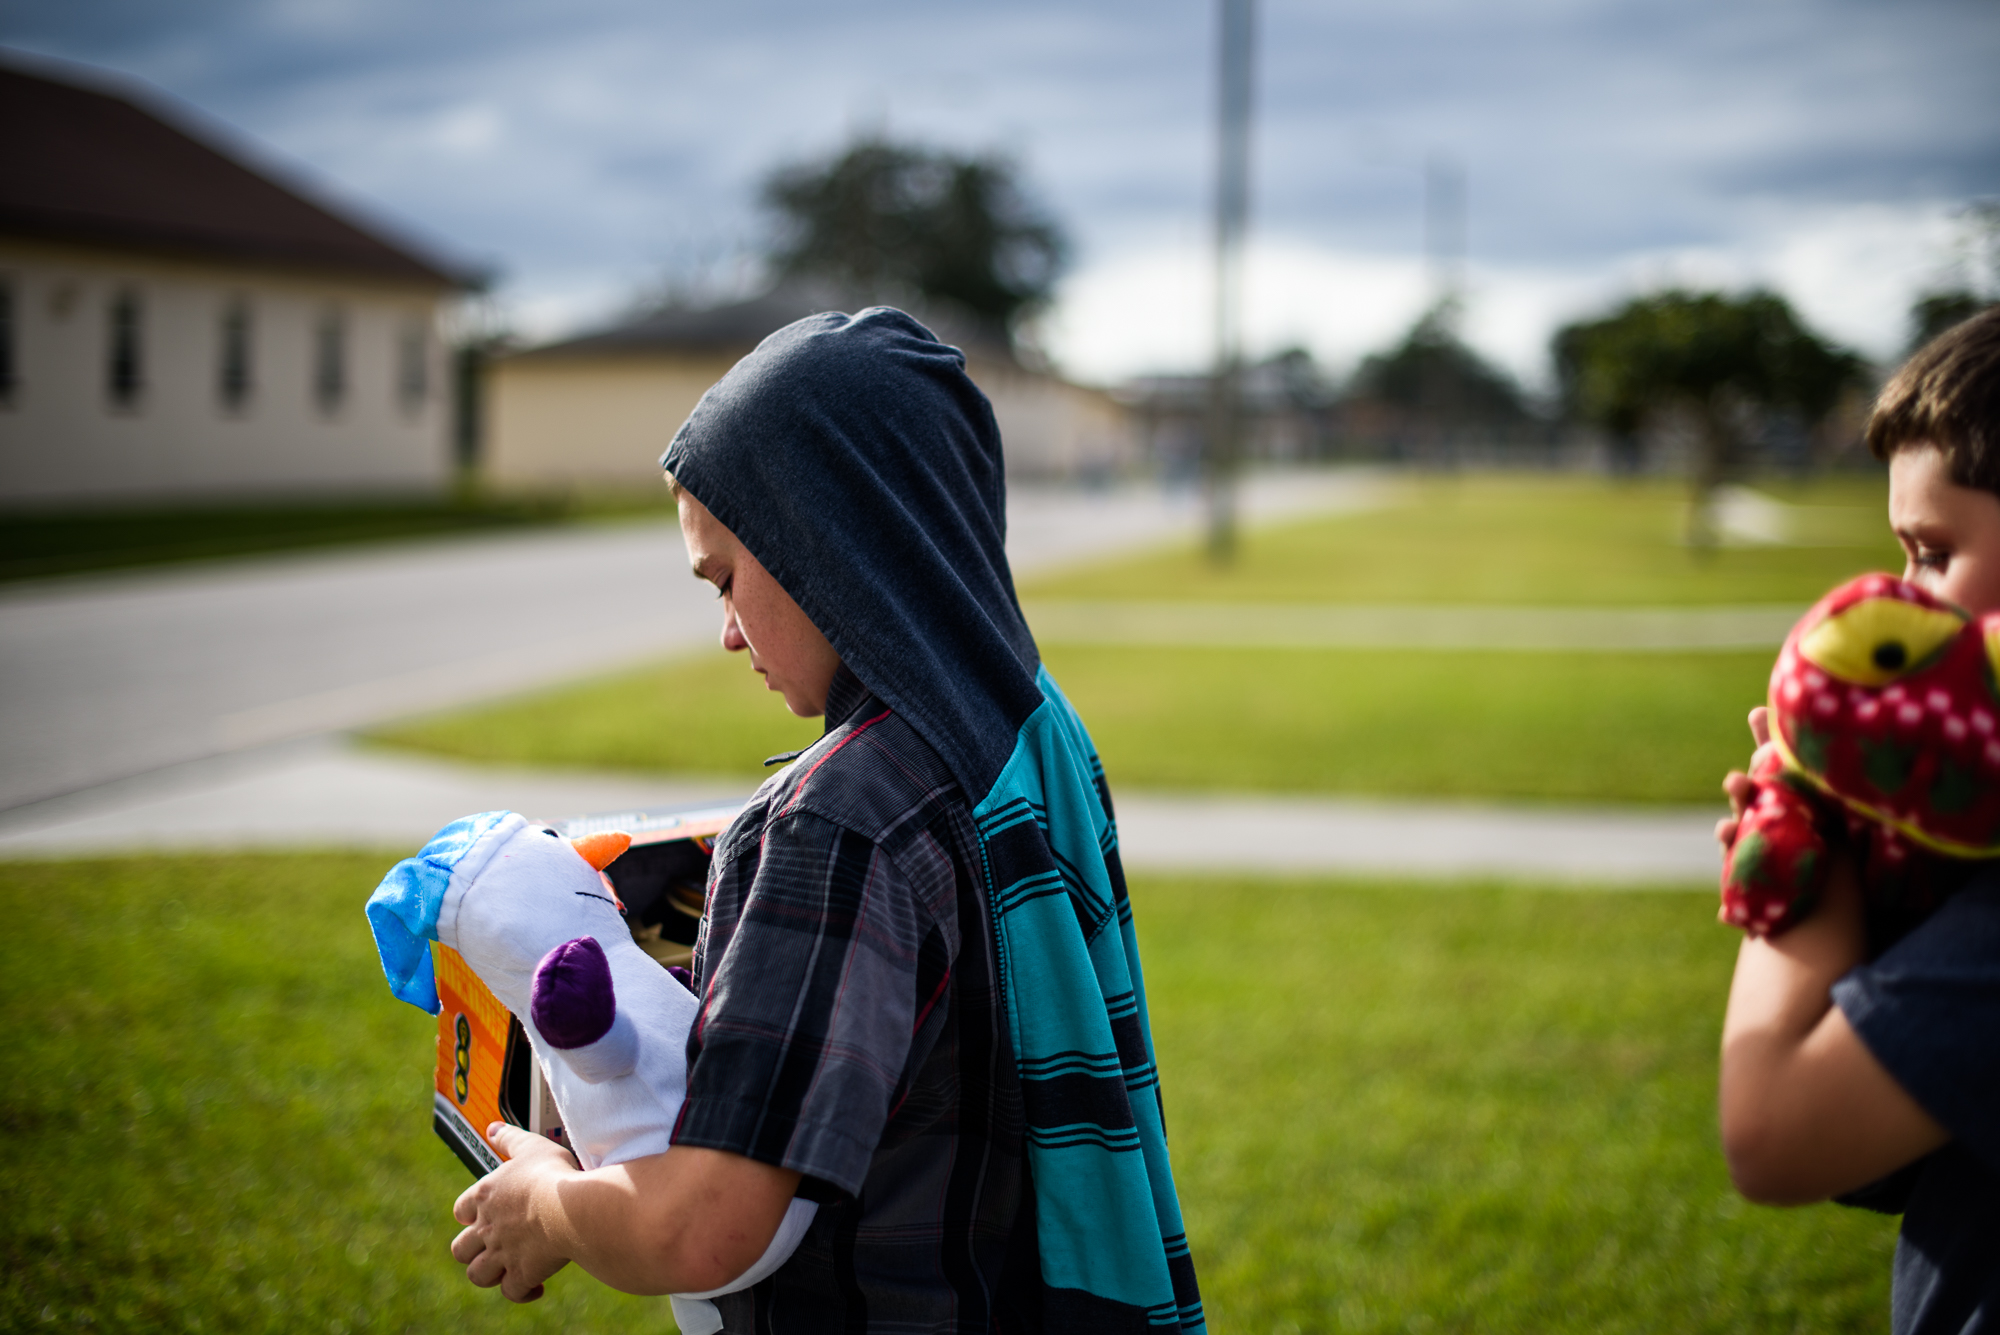 Thomas, age 13, exits the Hernando Correctional Institution in Brooksville, Florida, where his mom, Opal, is incarcerated; Thomas has not seen Opal since she was arrested 4 years prior.